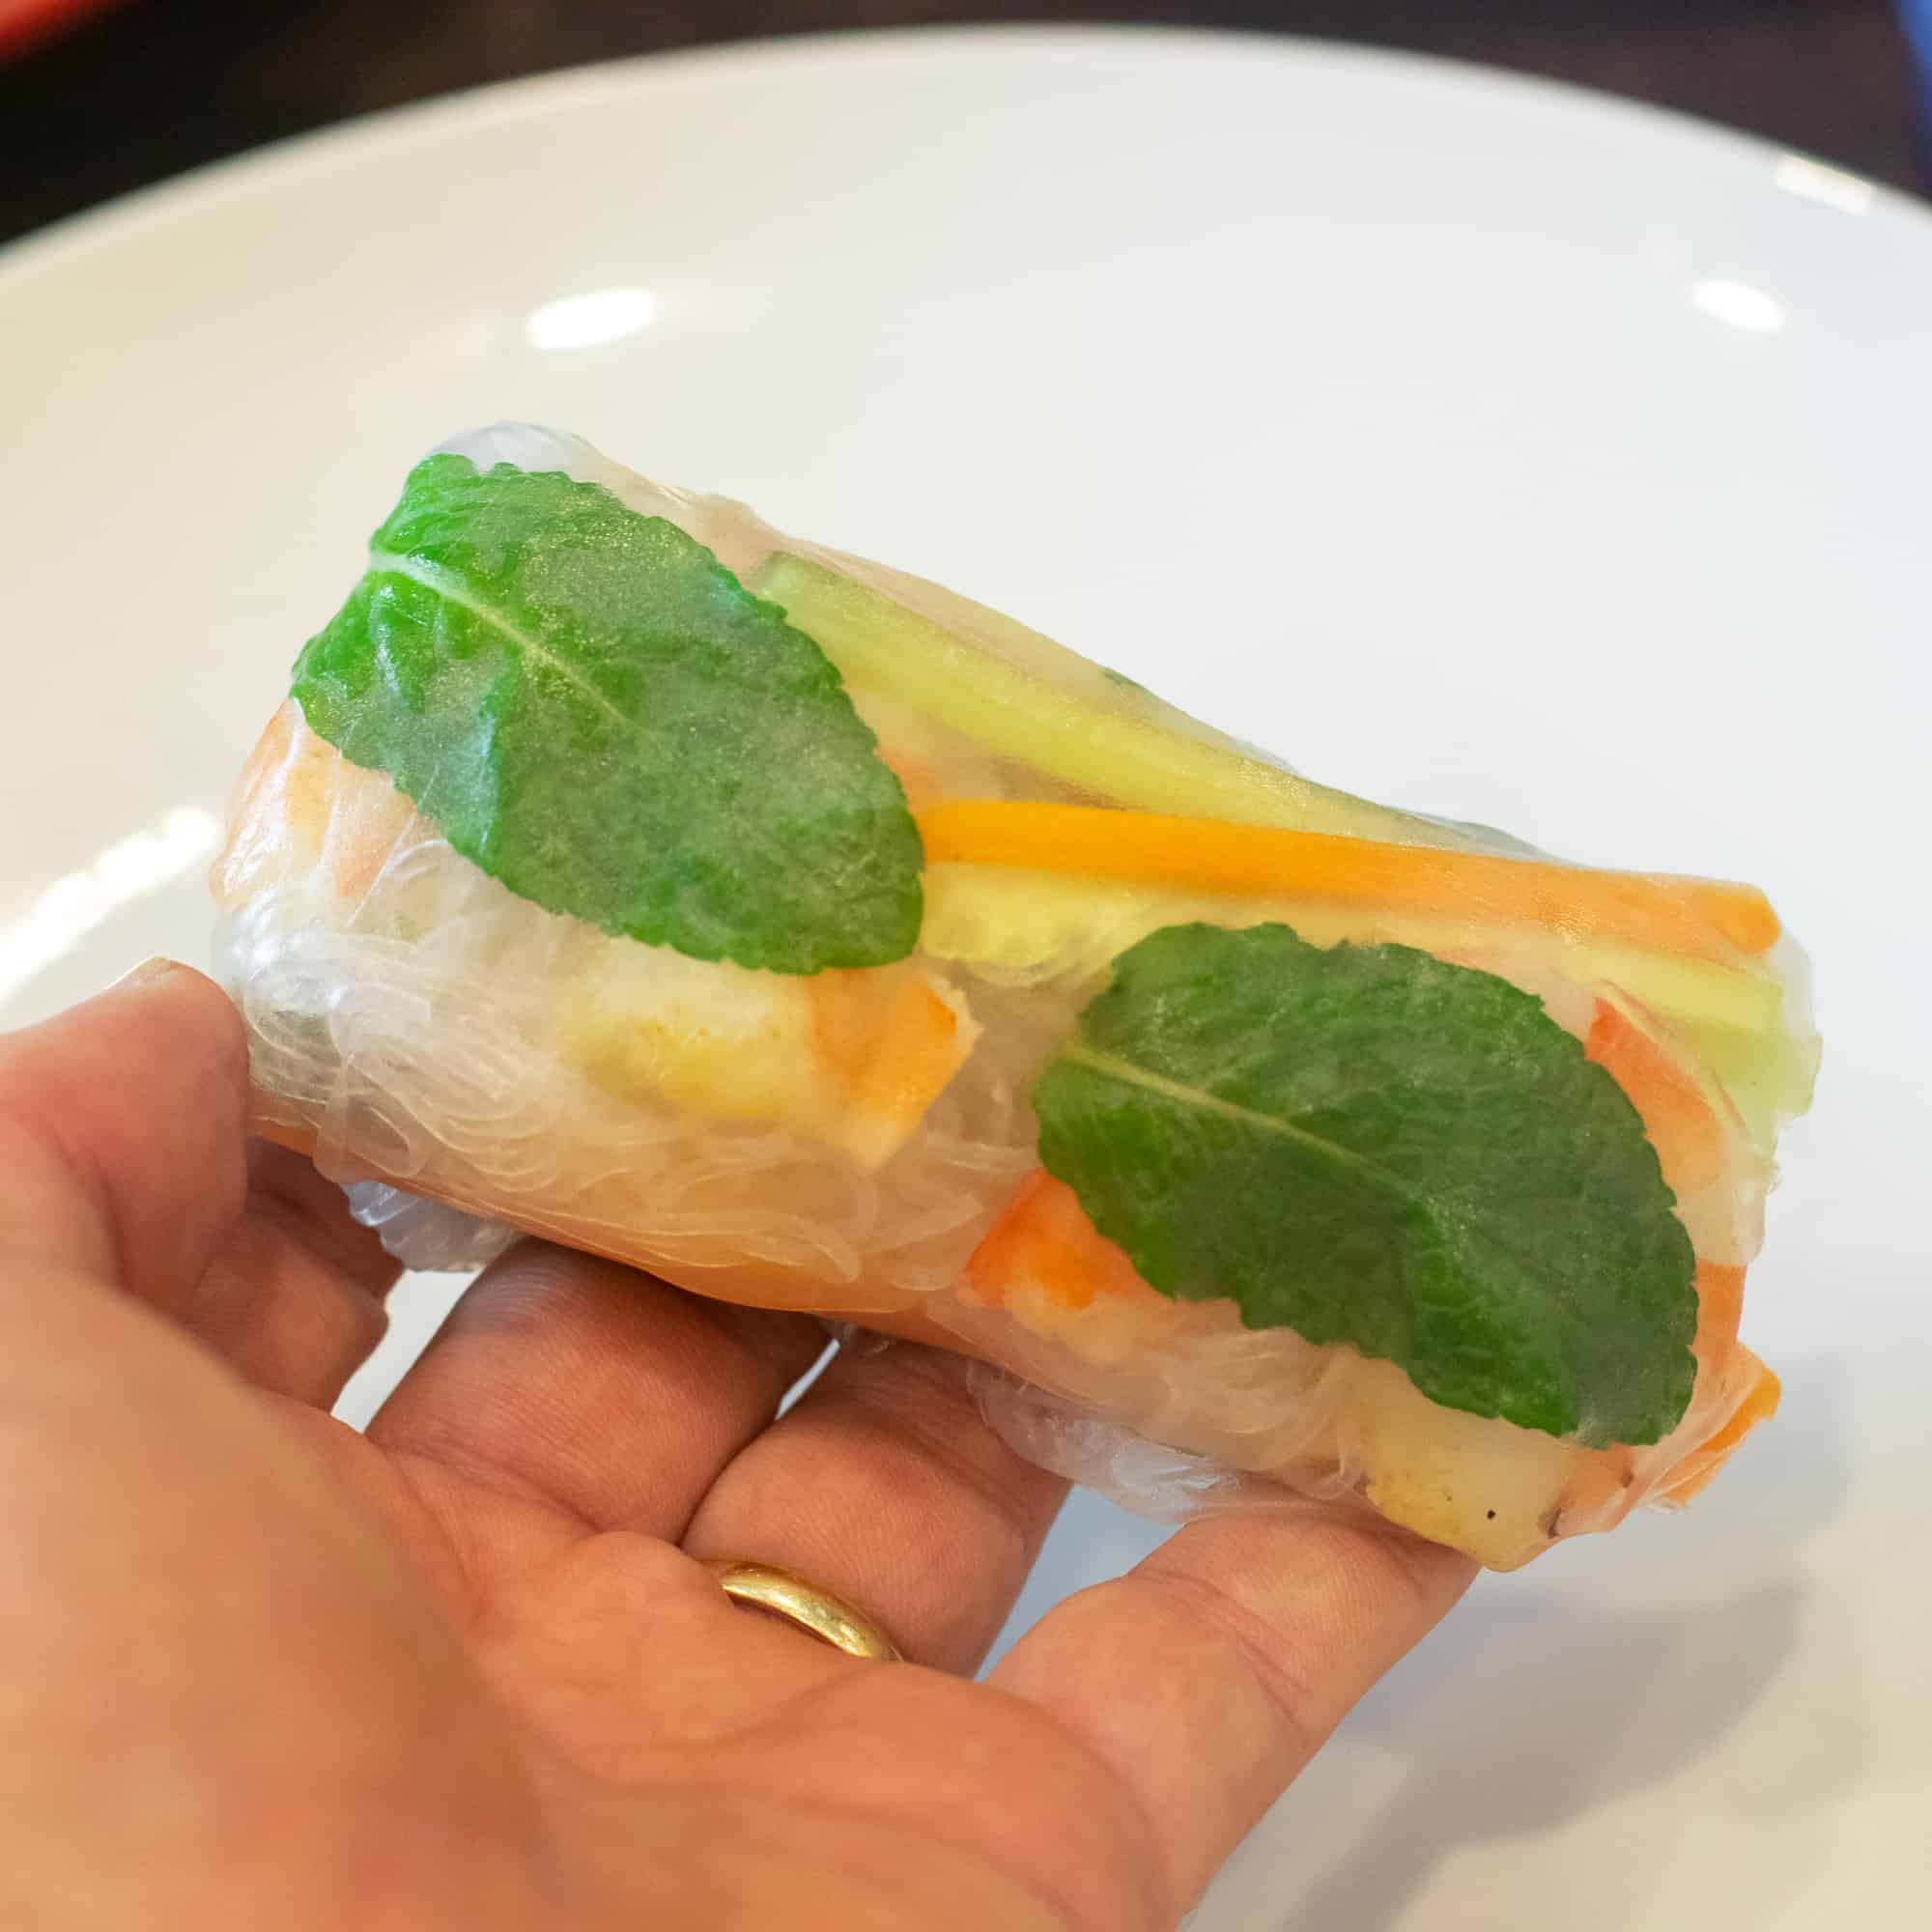 Finish wrapping the Vietnamese spring by pulling the final side of the rice paper over the middle and roll it up.